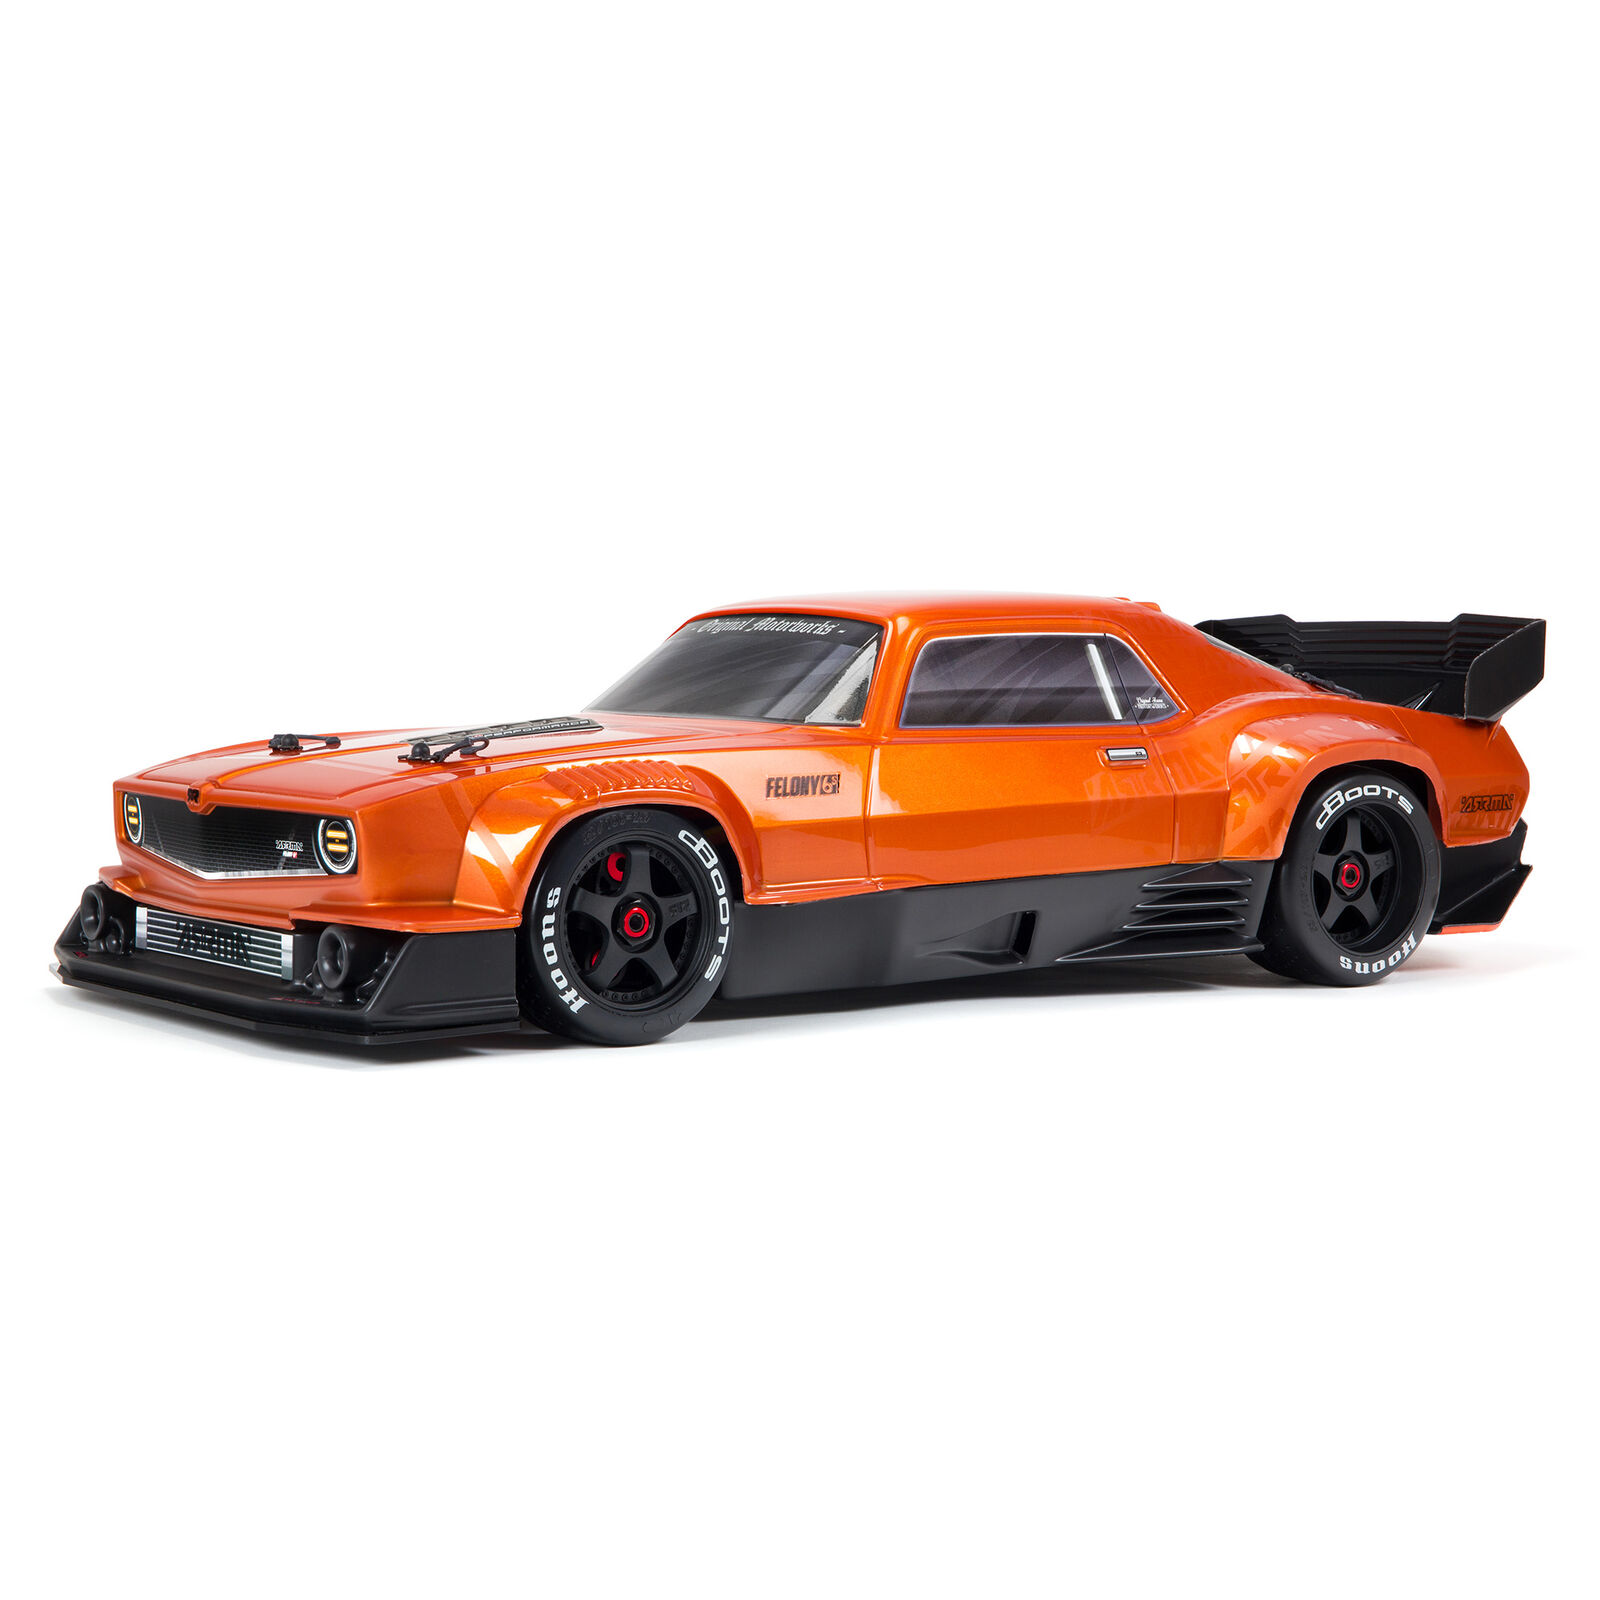 1/7 FELONY 6S BLX Street Bash All-Road Muscle Car RTR, Orange